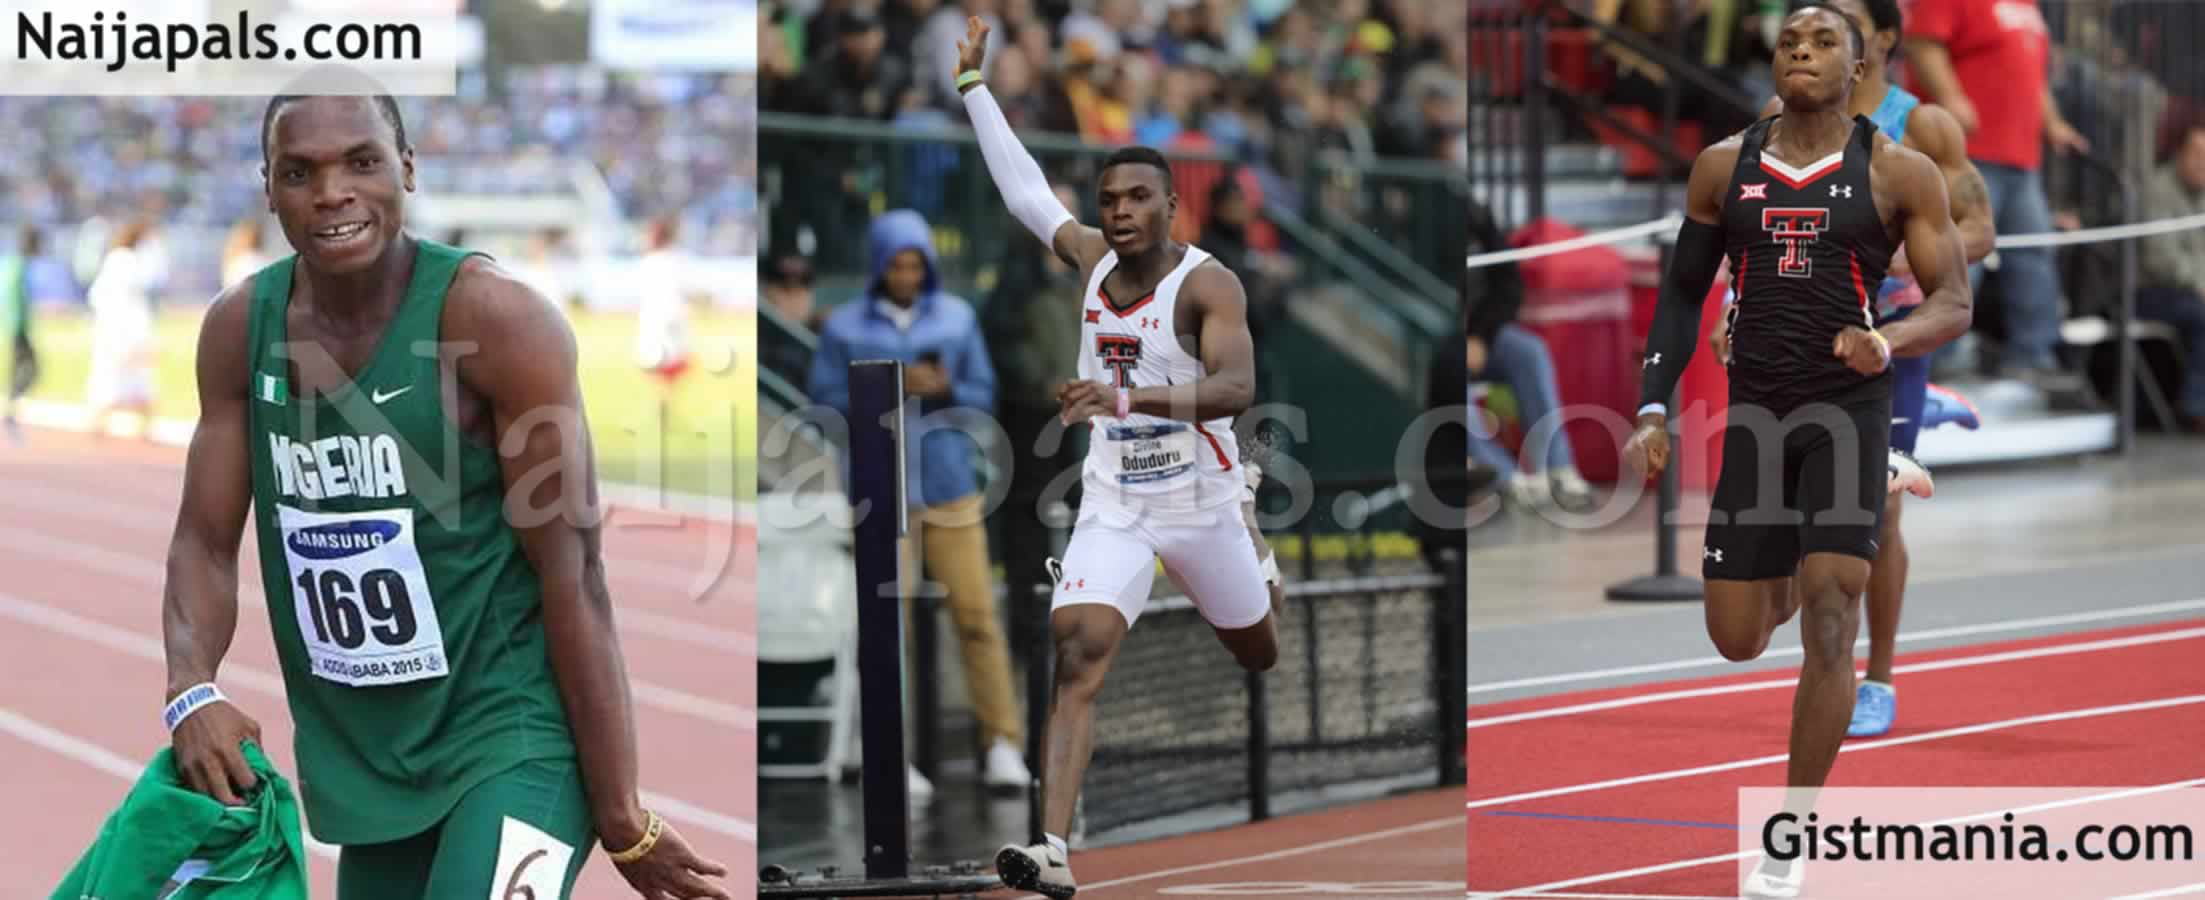 Nigerian Athlete 'Divine Oduduru' Becomes The Fastest Man In The World